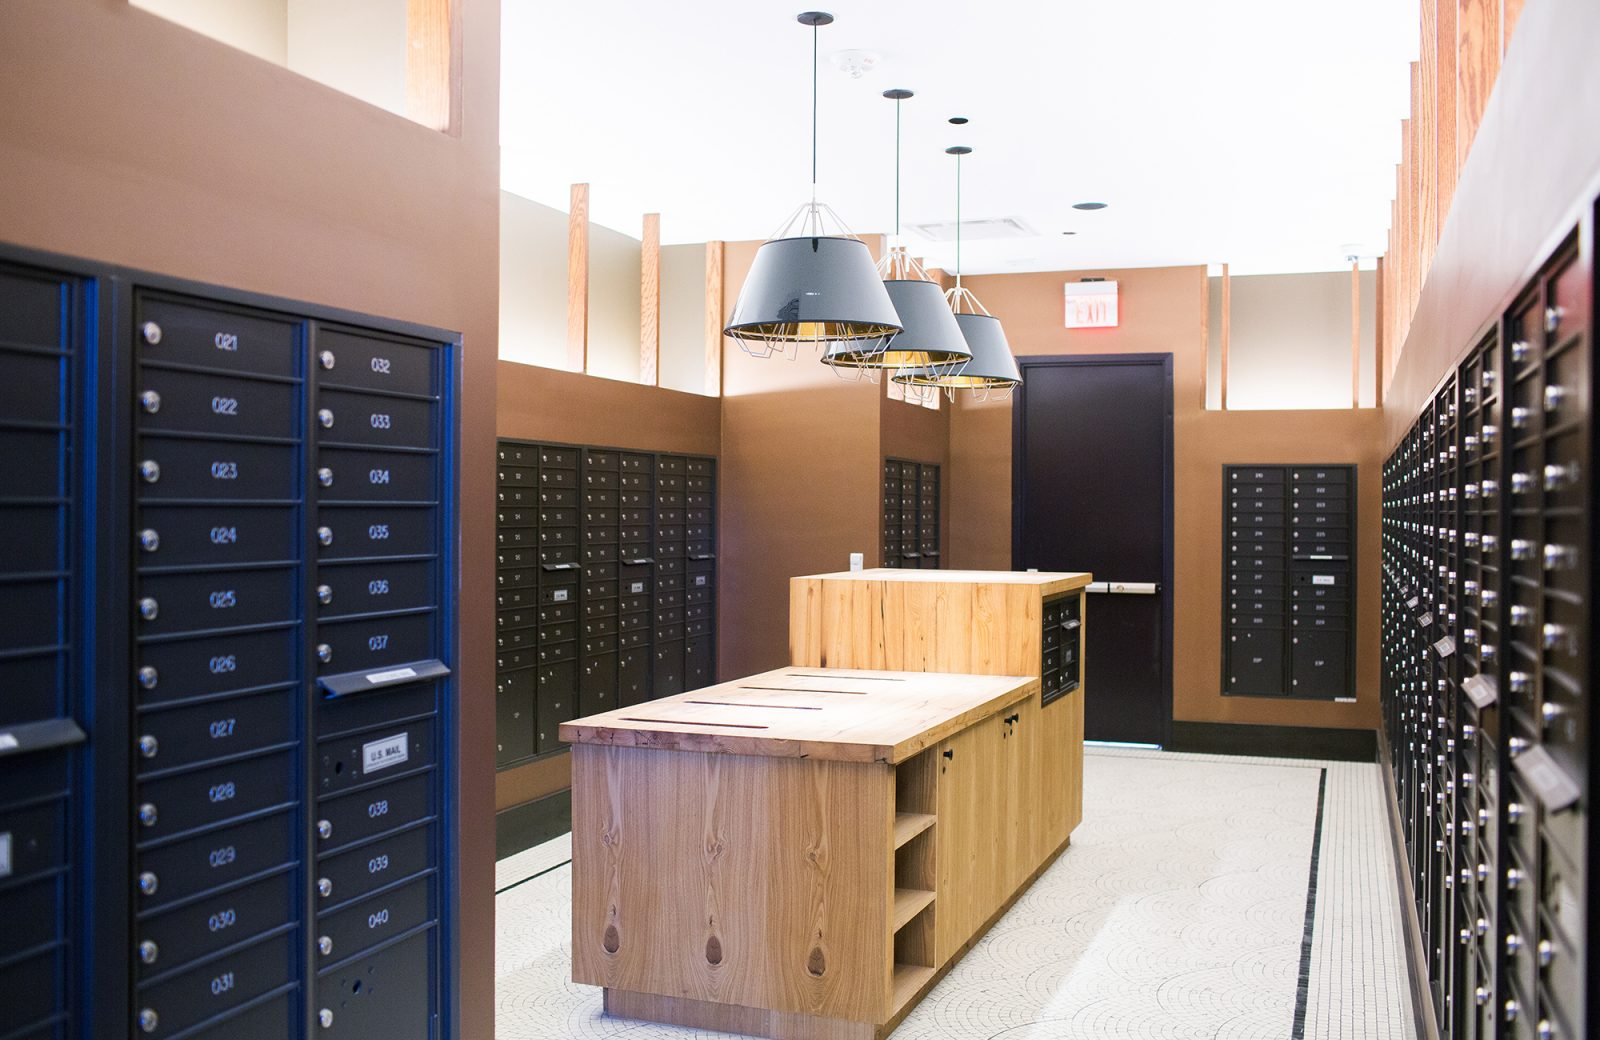 Features and Amenities - Mail Room